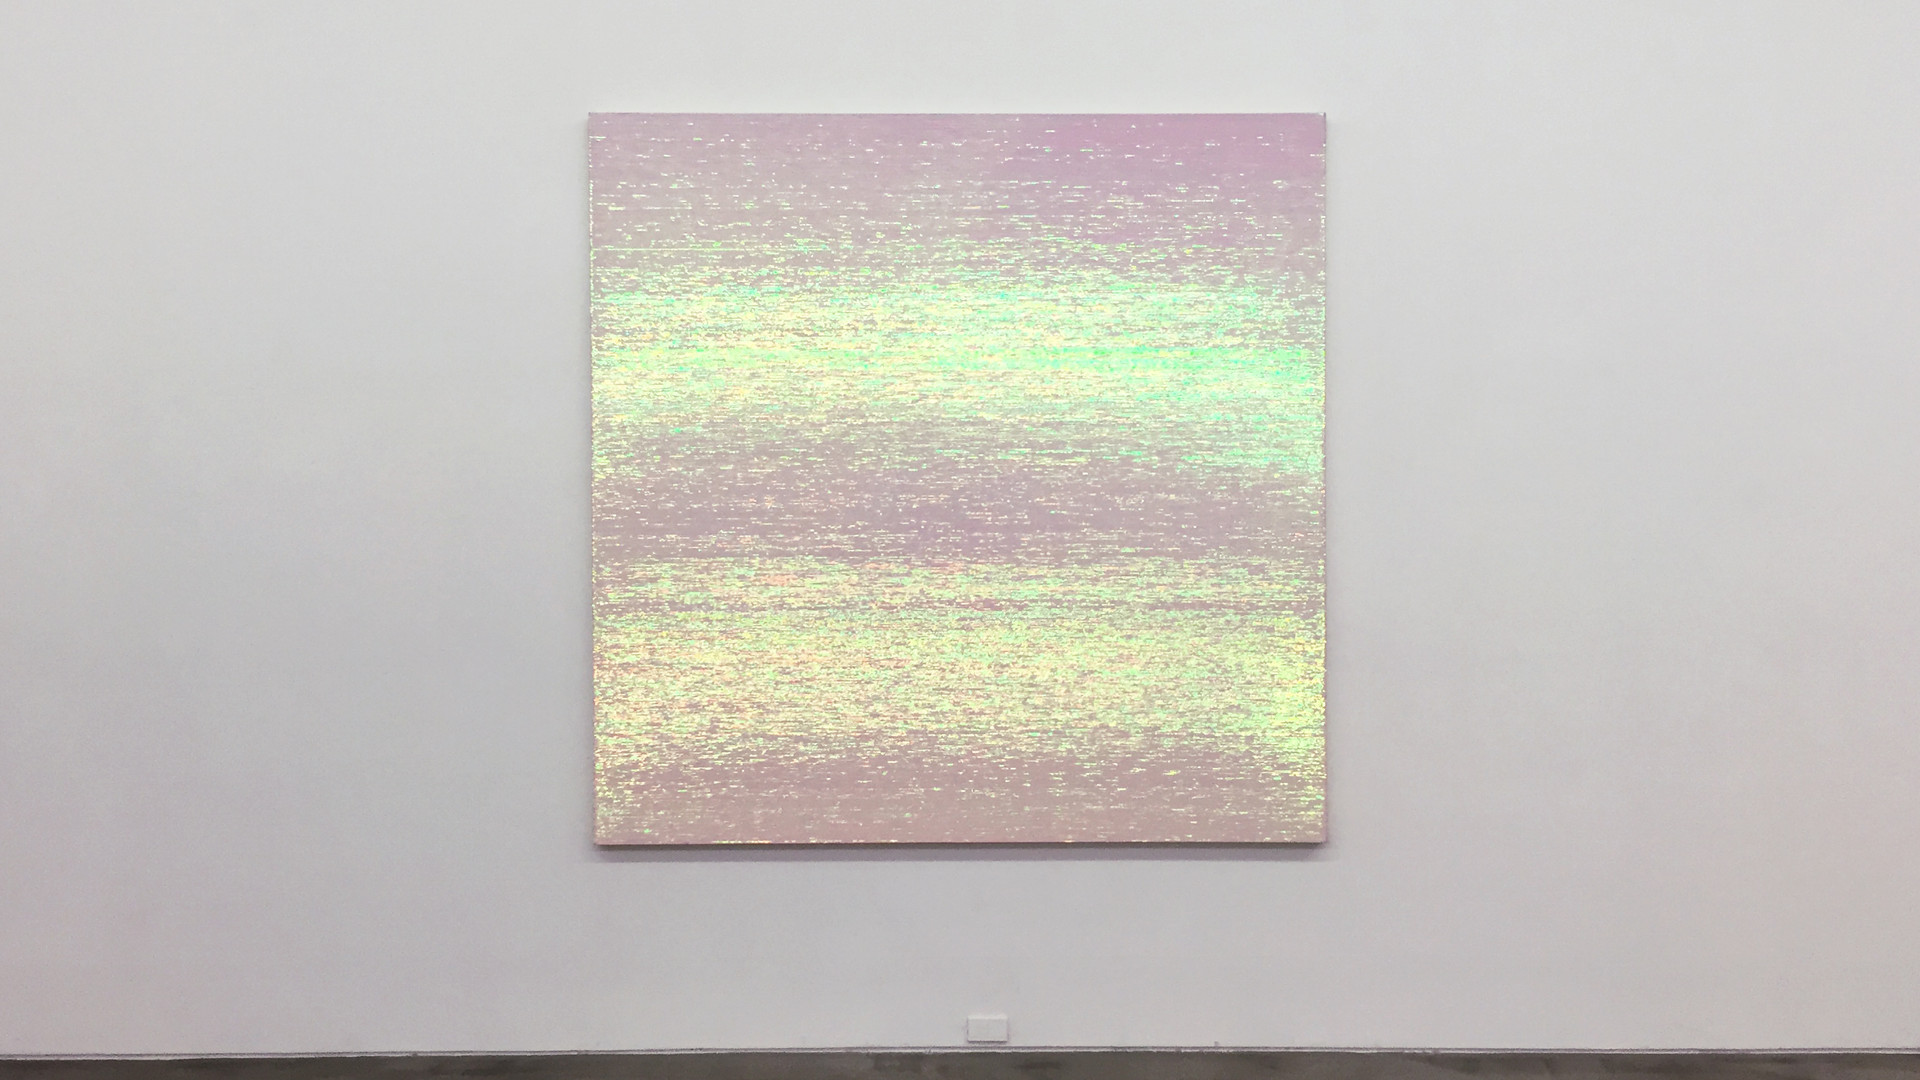 Noh, Sang-Kyoon, The Directions, 2002, sequins on canvas, 218 x 218 cm